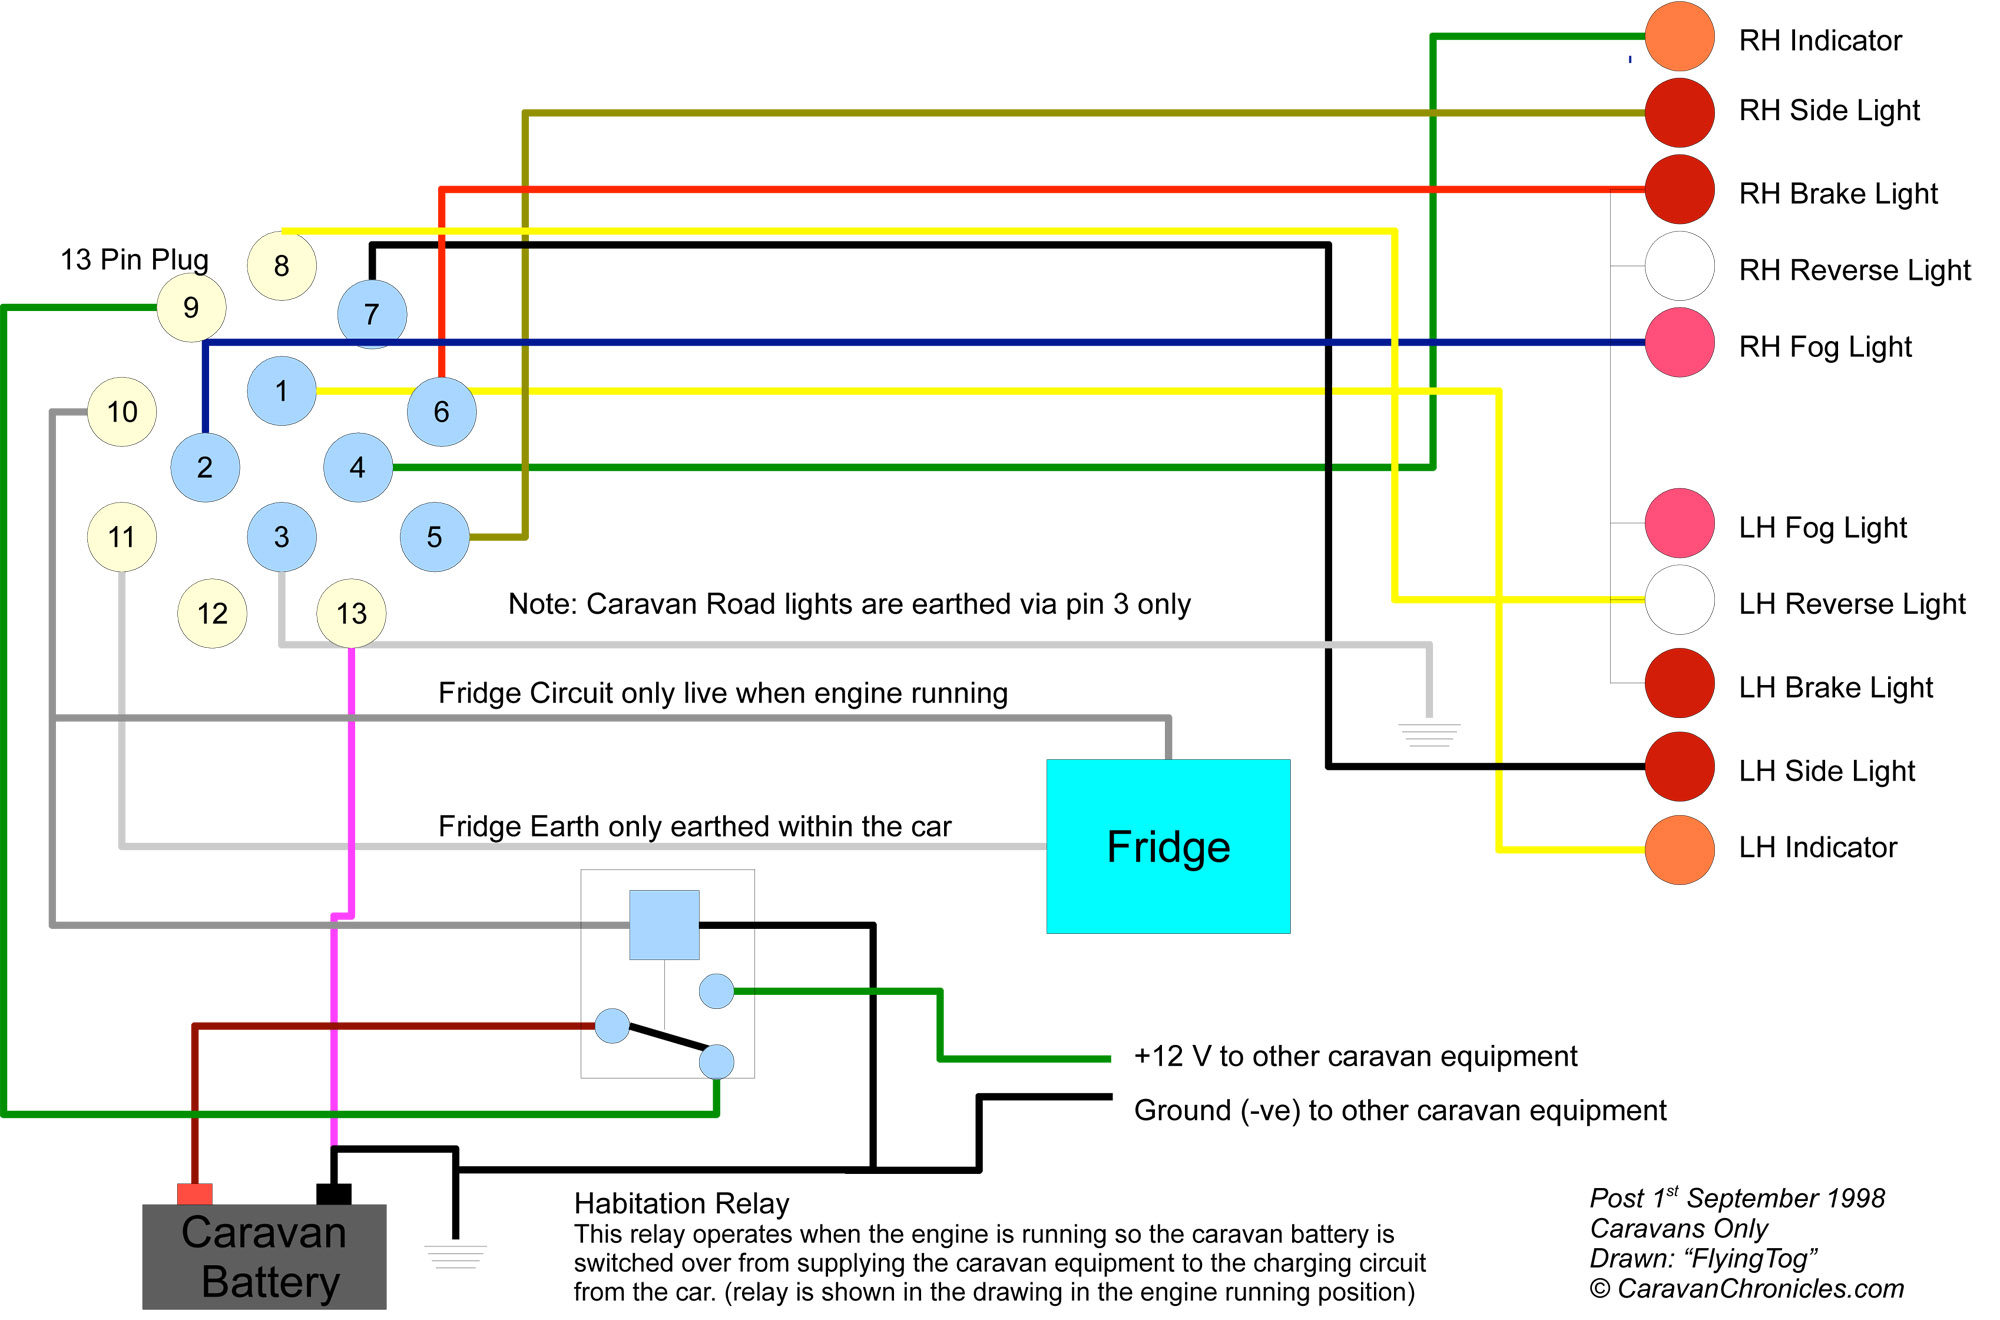 Understanding the Leisure Battery Charging Circuit | Caravan ... on light electrical wiring, light transmission diagram, 2007 ford f-150 fuse box diagram, light bar diagram, 2 lights 2 switches diagram, light bulbs diagram, light installation diagram, 2004 pontiac grand prix fuse box diagram, 2004 acura tl fuse box diagram, light switch, light electrical diagram, light wiring parts, light roof diagram, http diagram, ford bronco fuse box diagram, light body diagram, light thermostat diagram, parking lights diagram, circuit diagram, 1994 mazda b4000 fuse panel diagram,